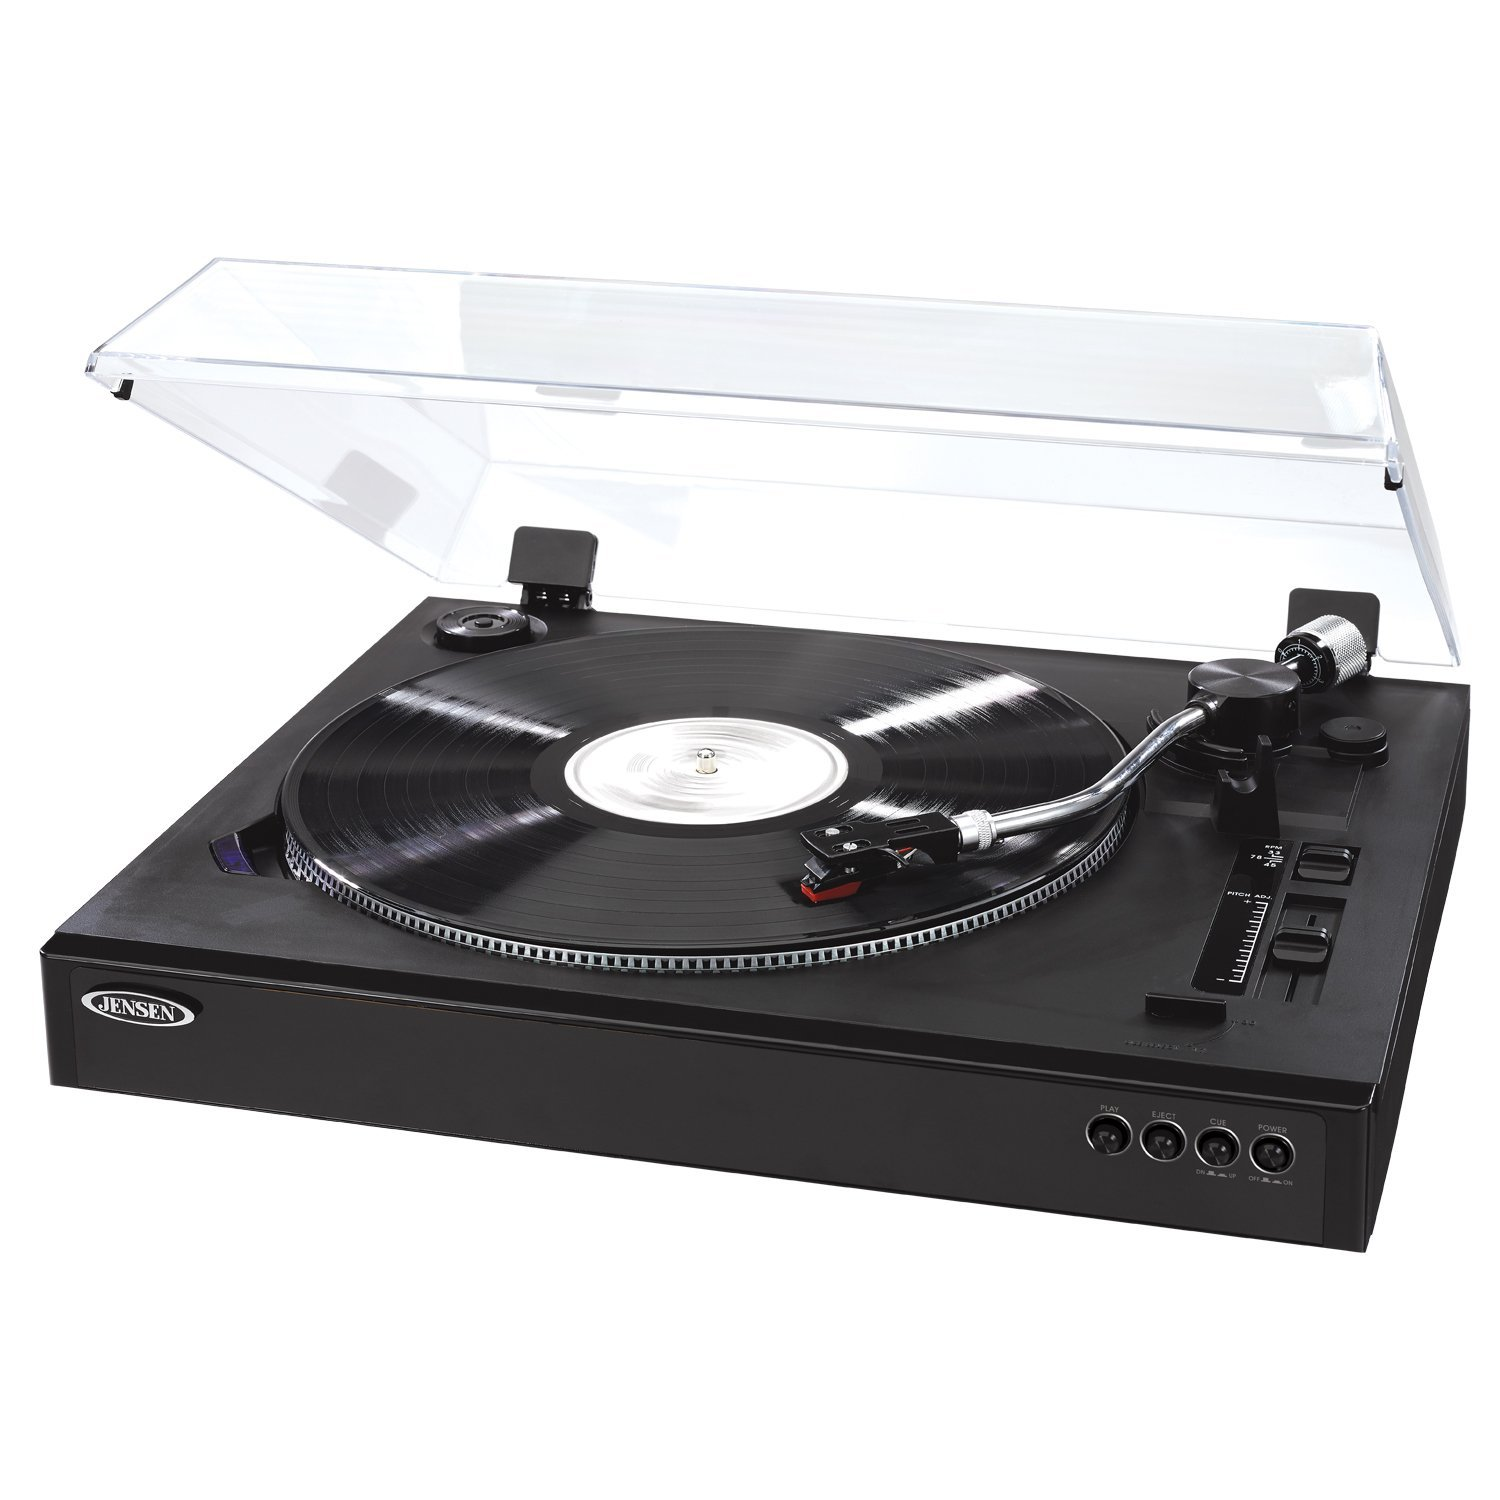 Portable Turntable, Jensen Jta-470 Record Player Modern Portable Stereo Turntable